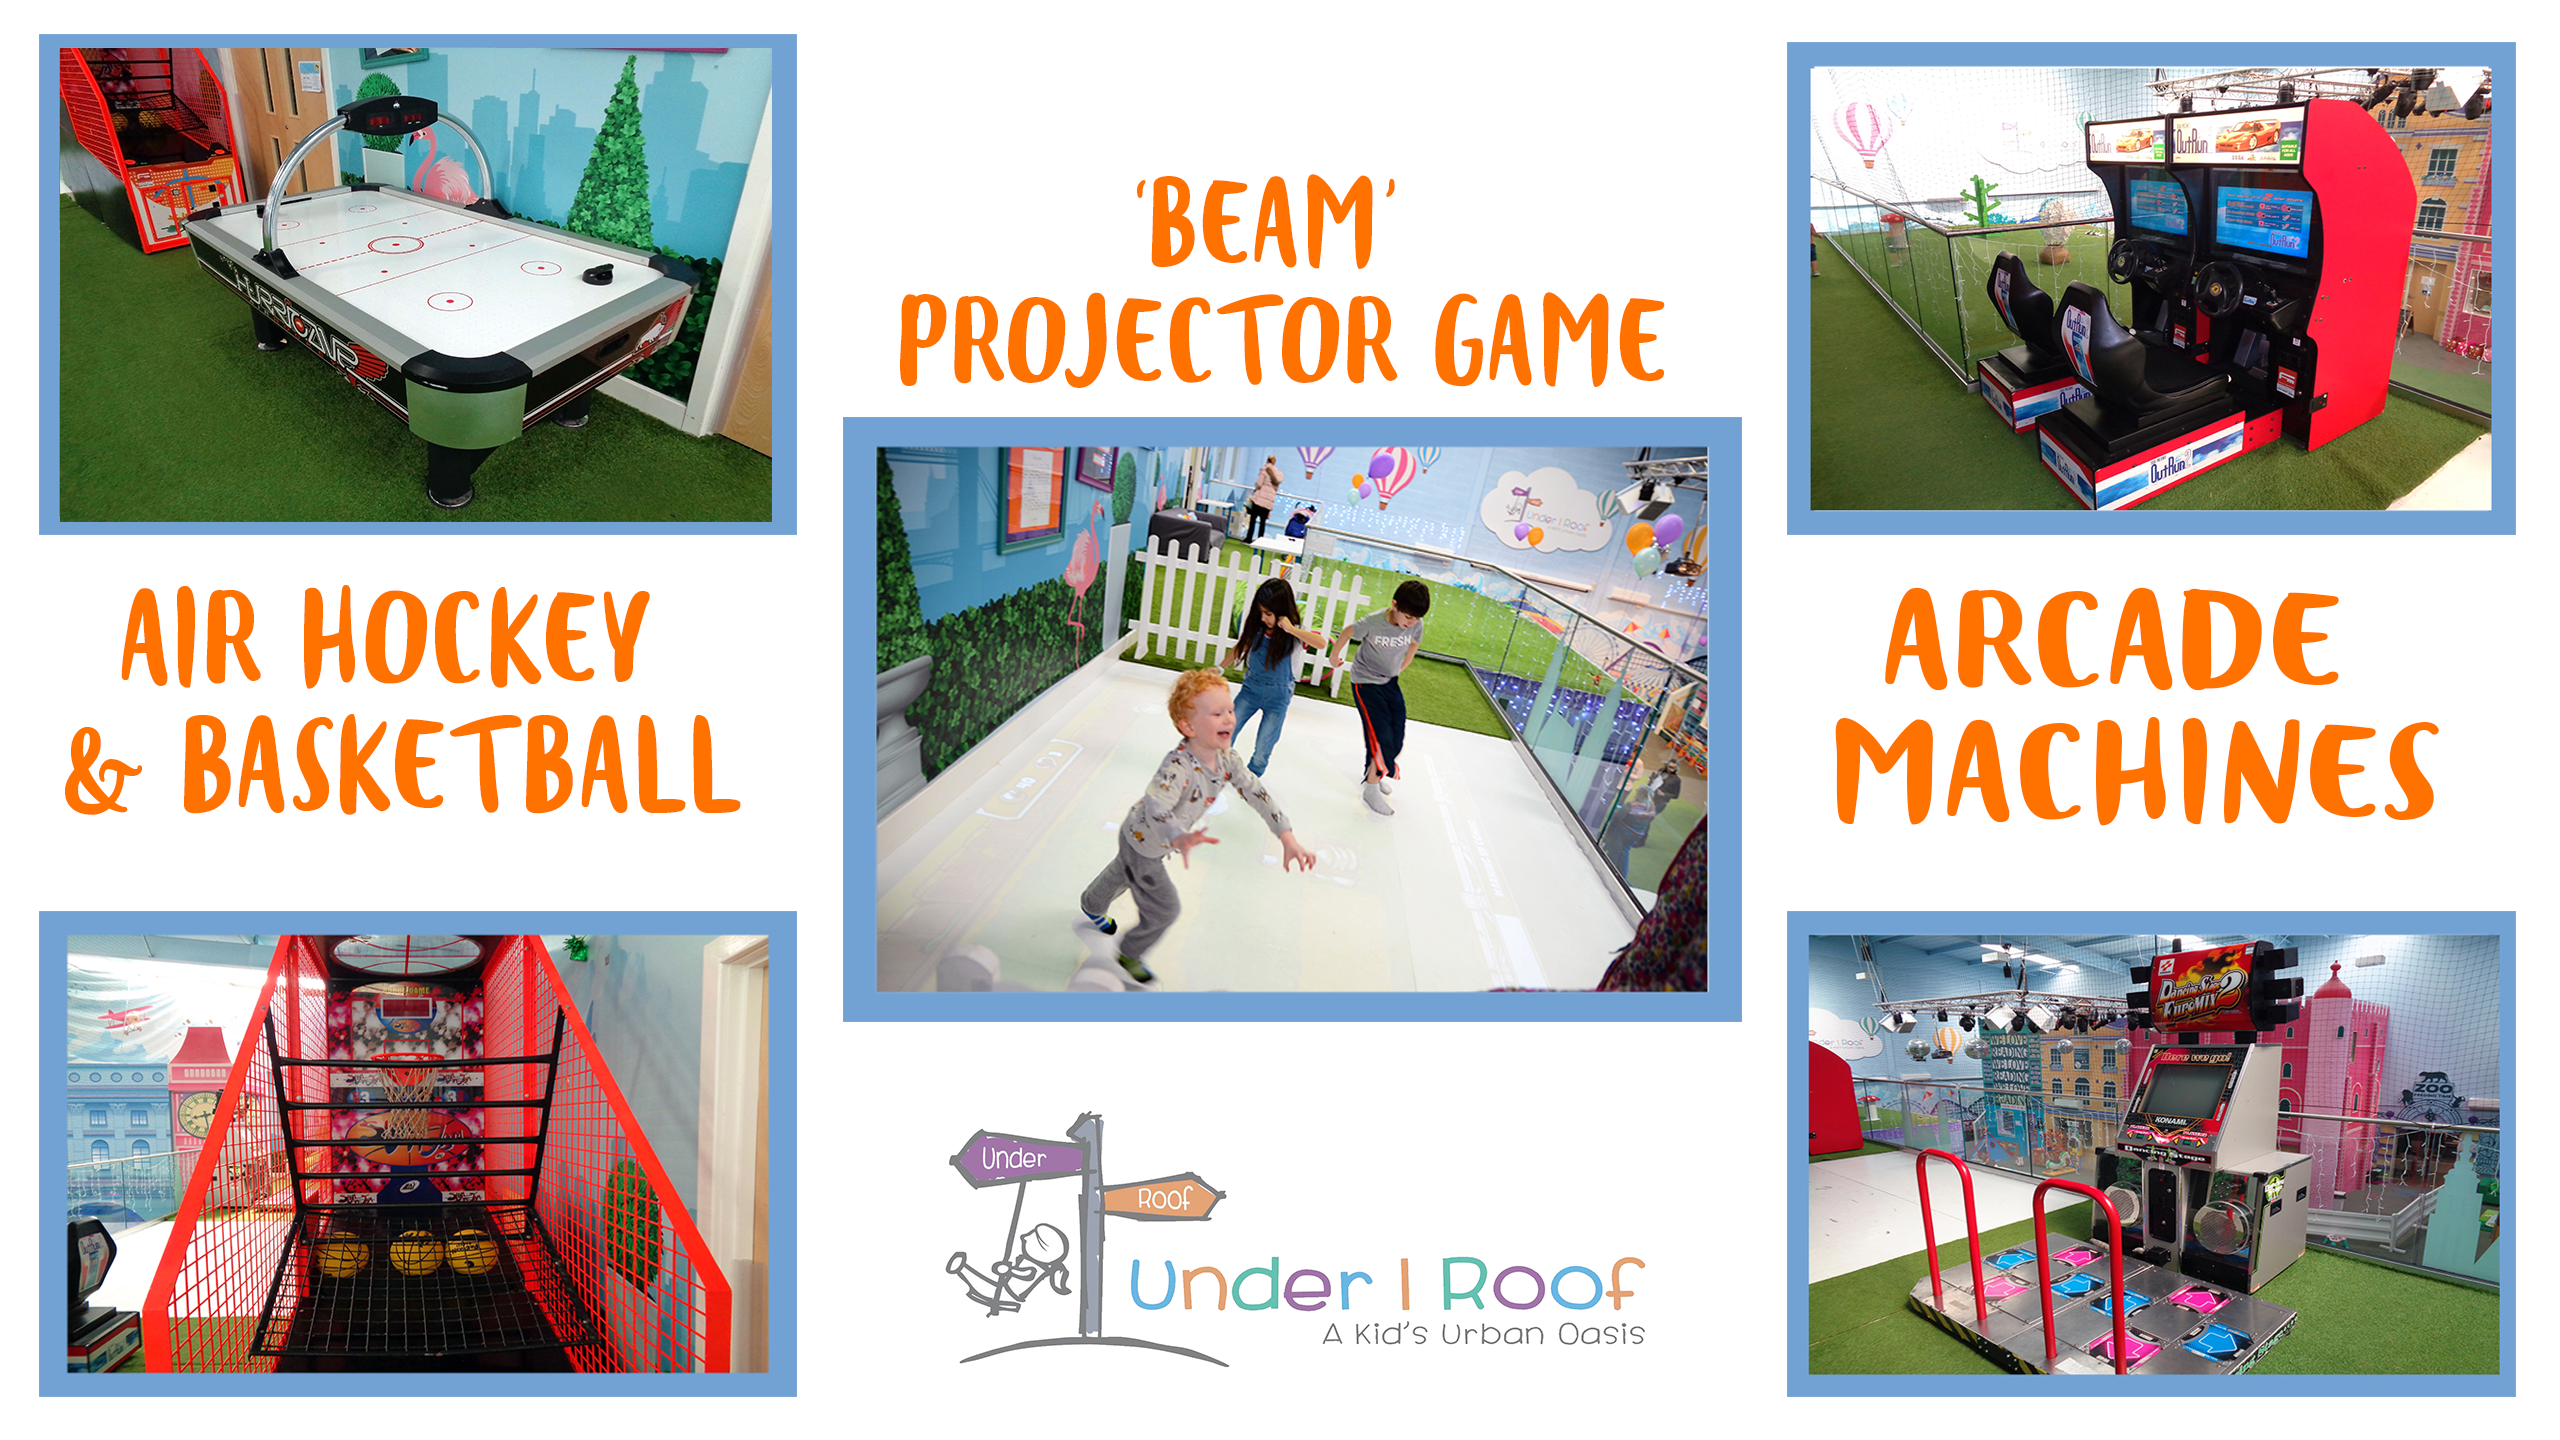 balcony game zone over 5 years play area under 1 roof kids